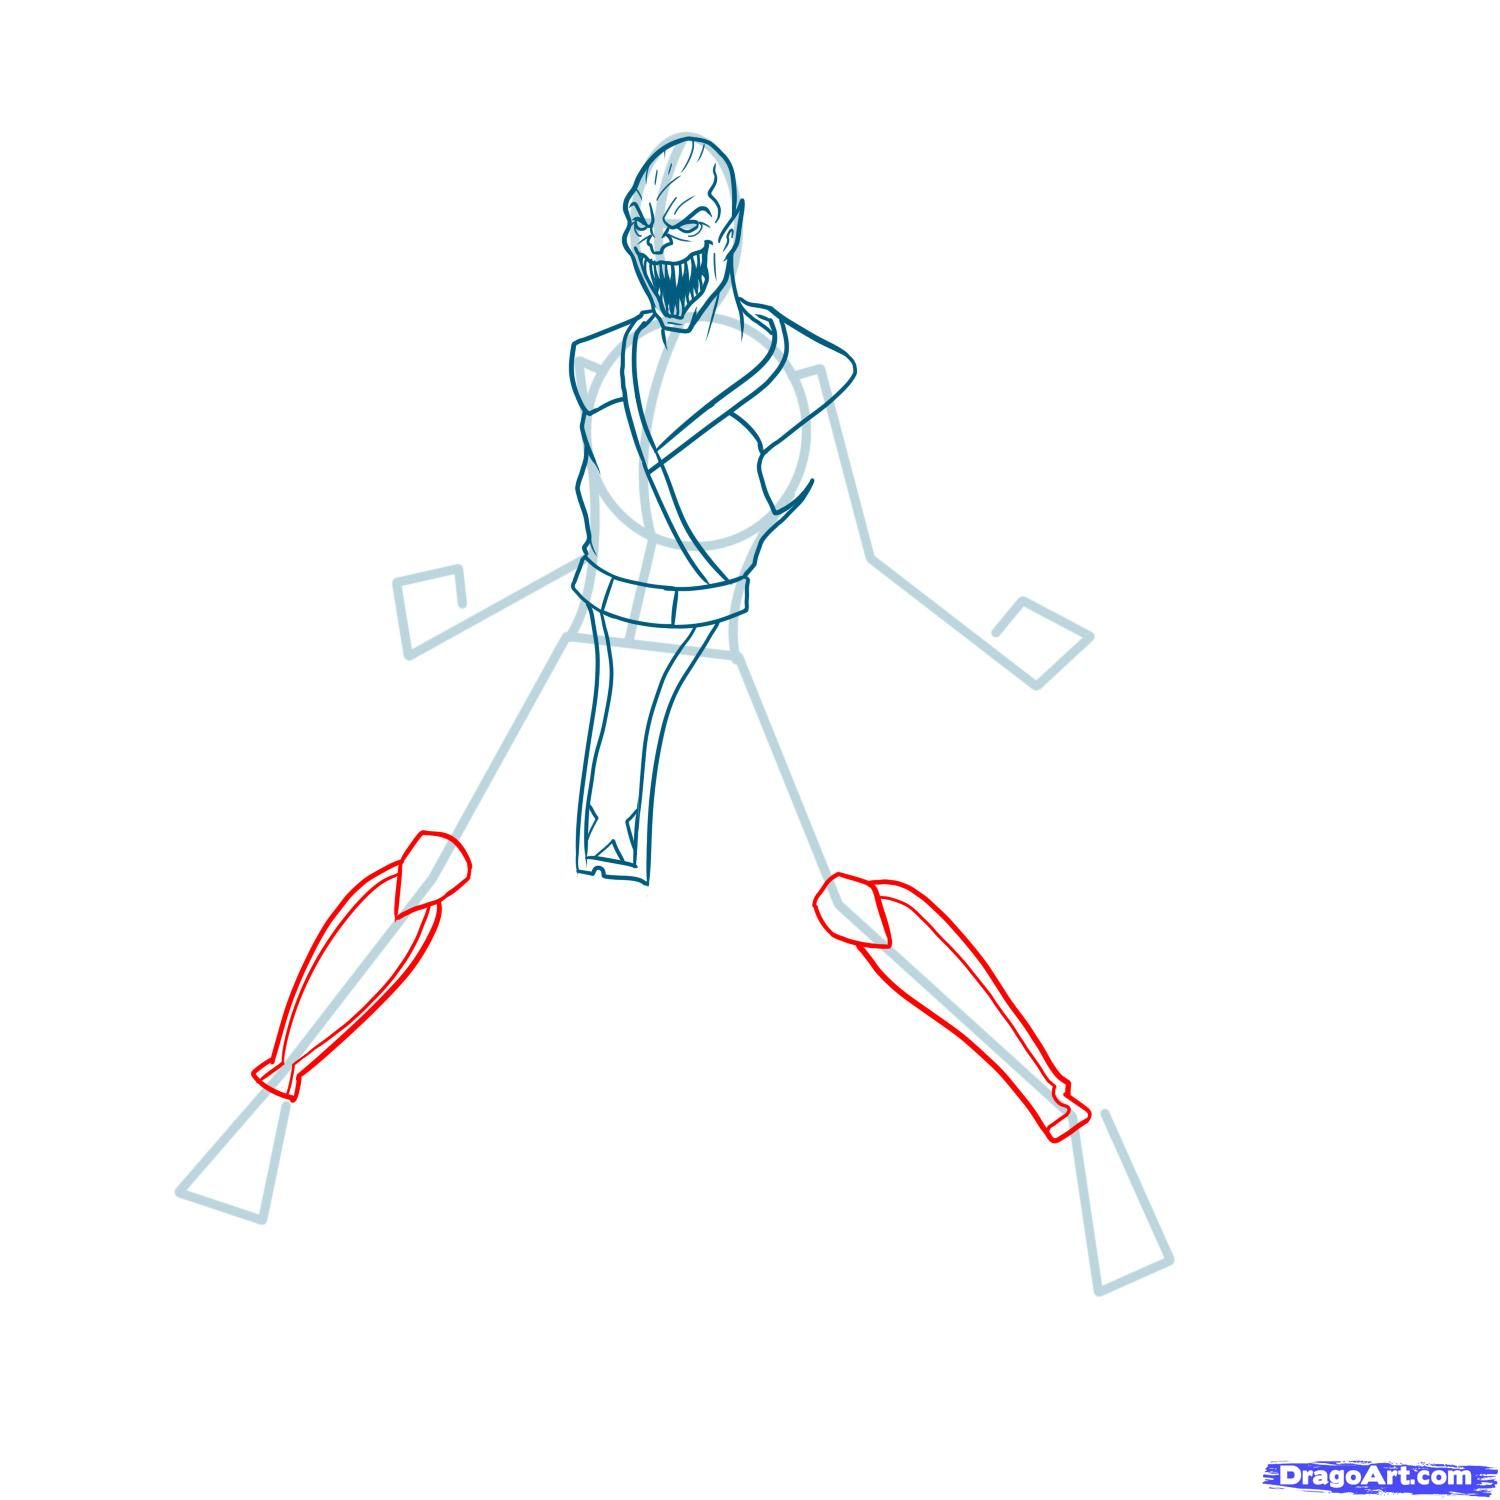 How to draw the Scorpion to the utmost from Mortal Kombat with a pencil step by step 9